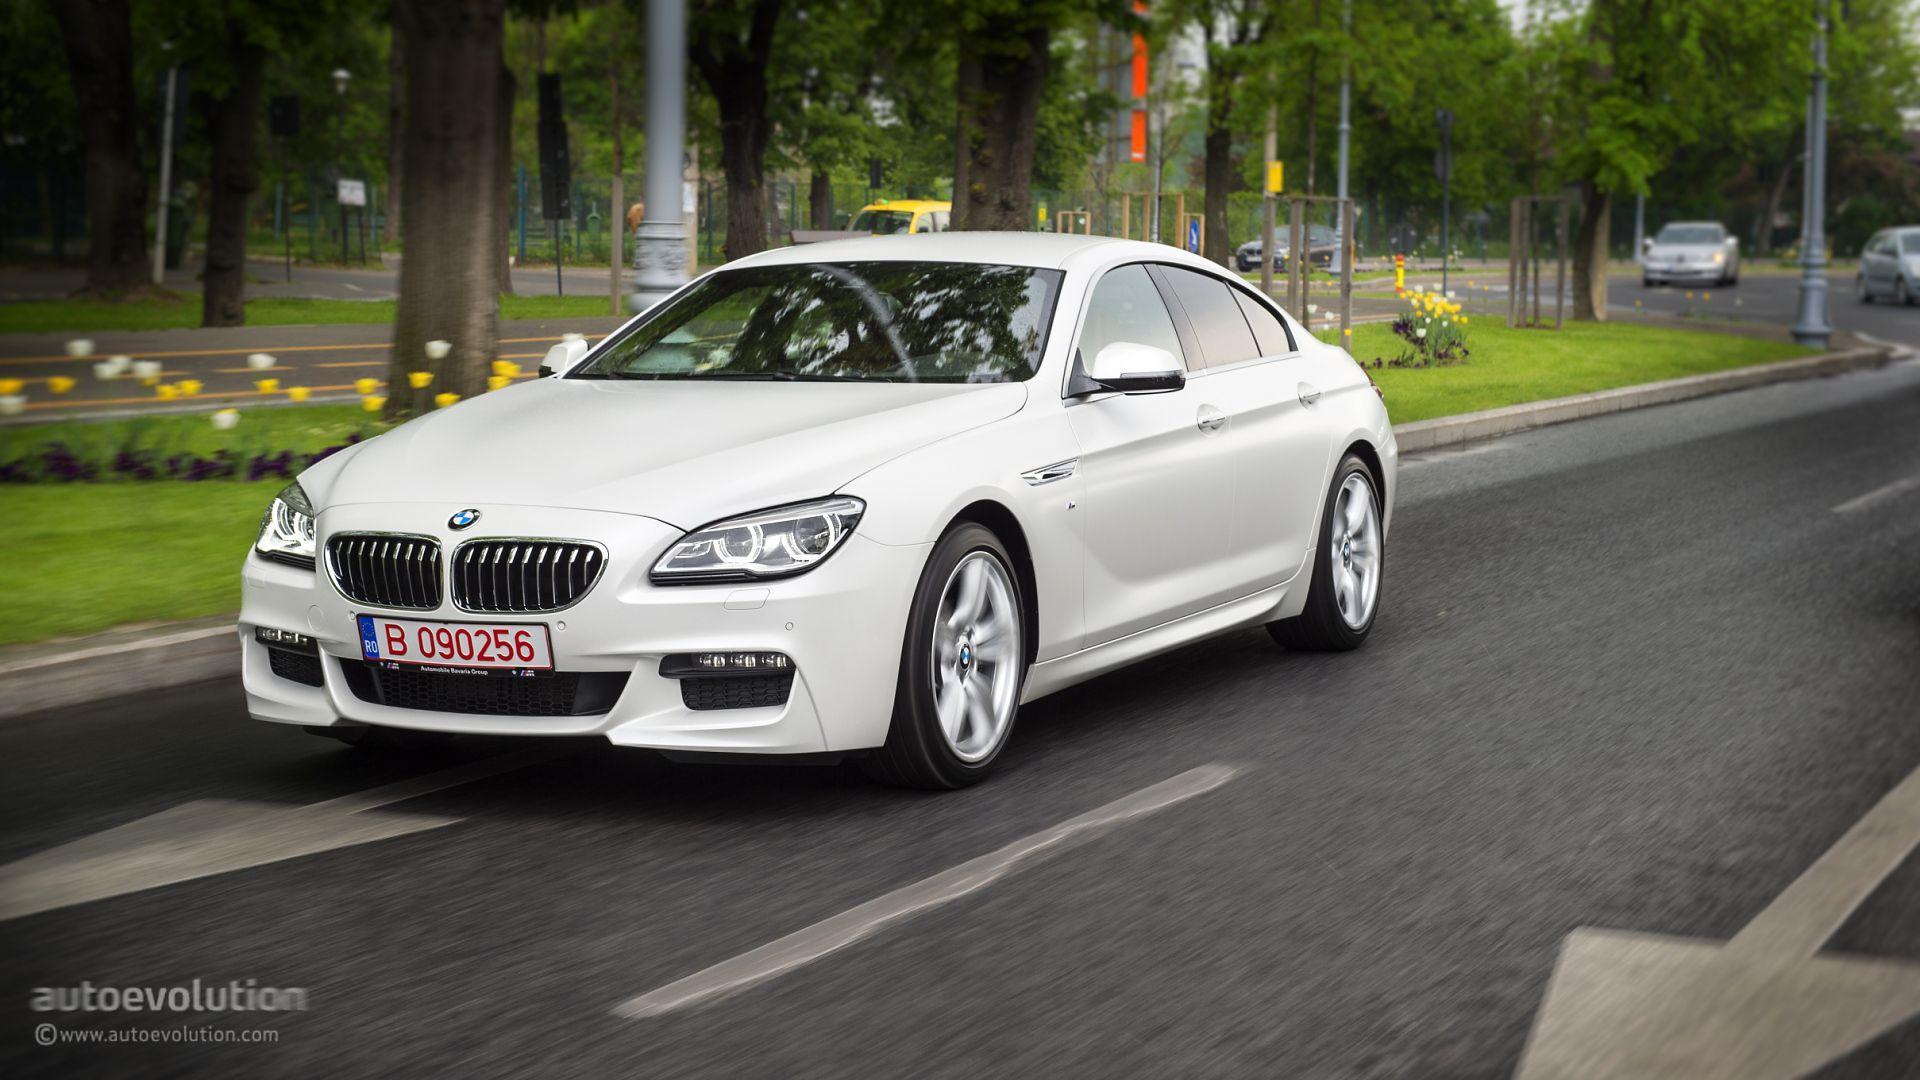 2016 BMW 6 Series Gran Coupe Wallpapers: Bring on the Frozen Paint